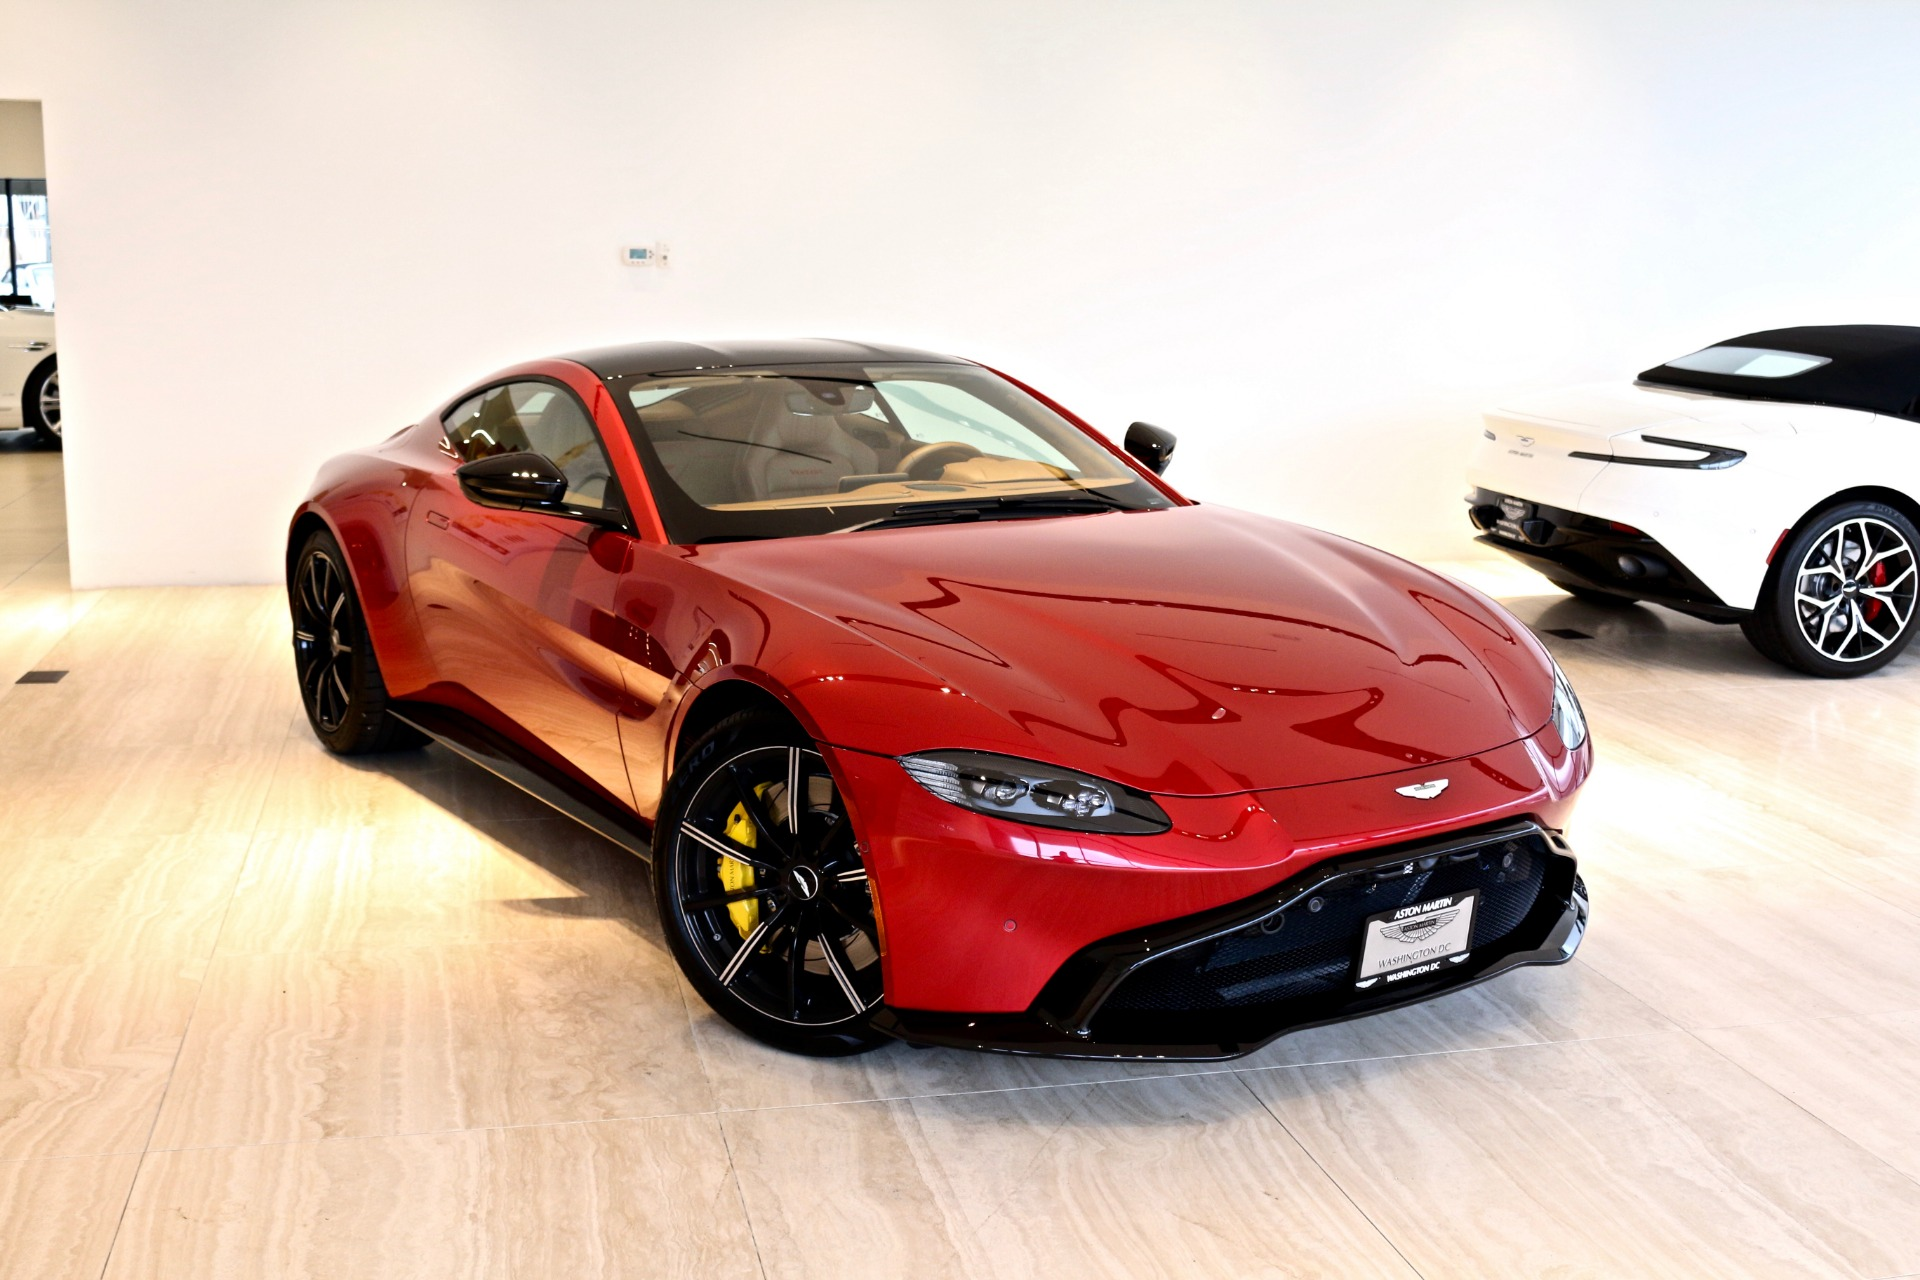 2019 Aston Martin Vantage Stock 9nn00128 For Sale Near Vienna Va